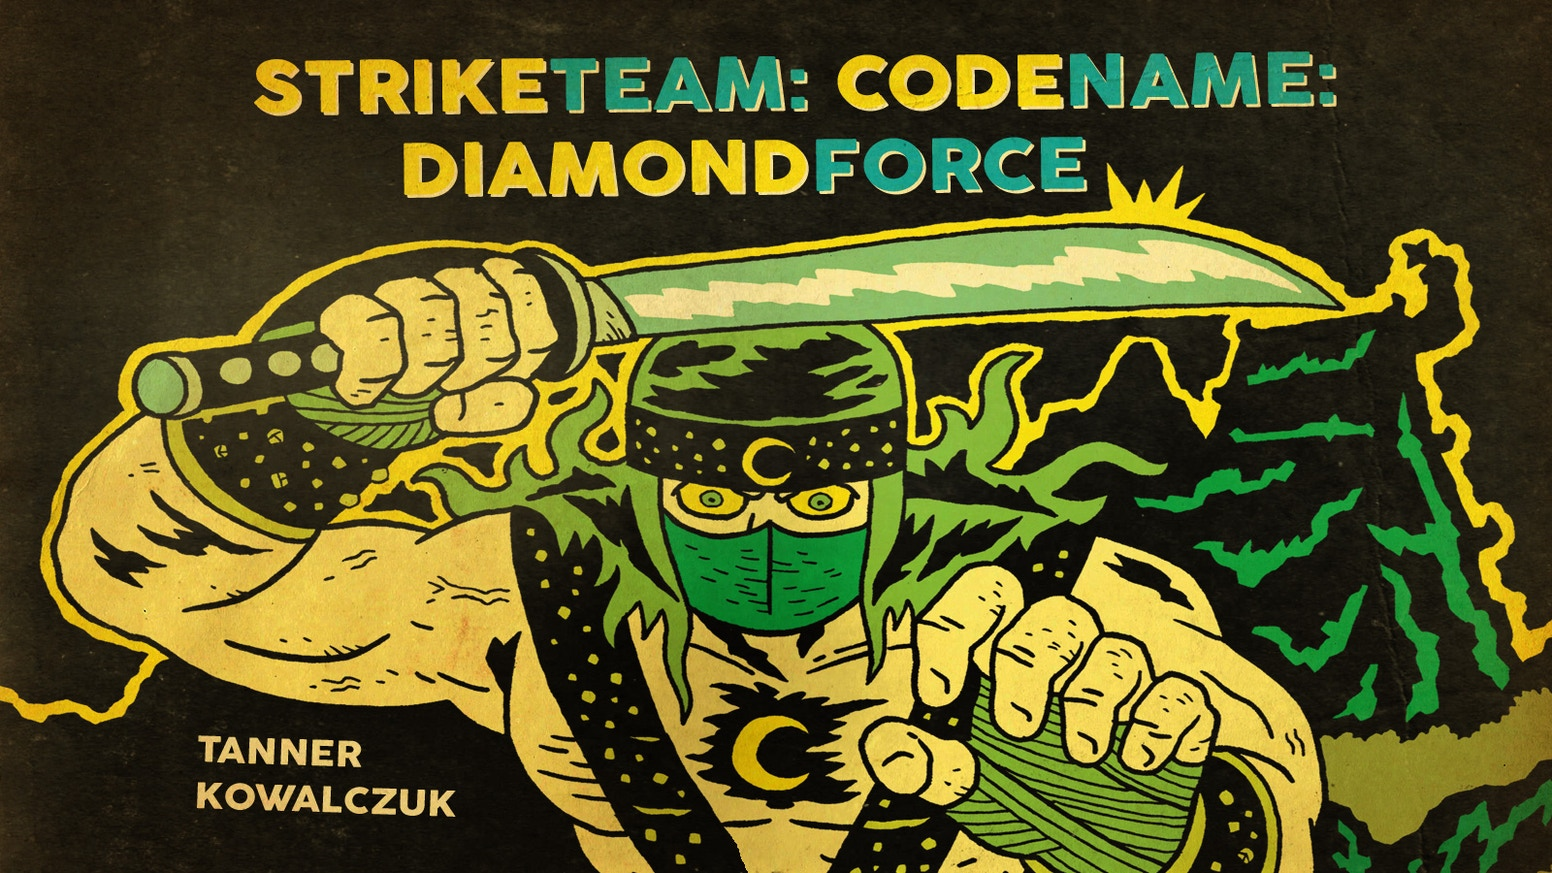 When the President's mistress is kidnapped by ninjas, there's only one team you can trust...Strike Team: Code Name: Diamond Force!